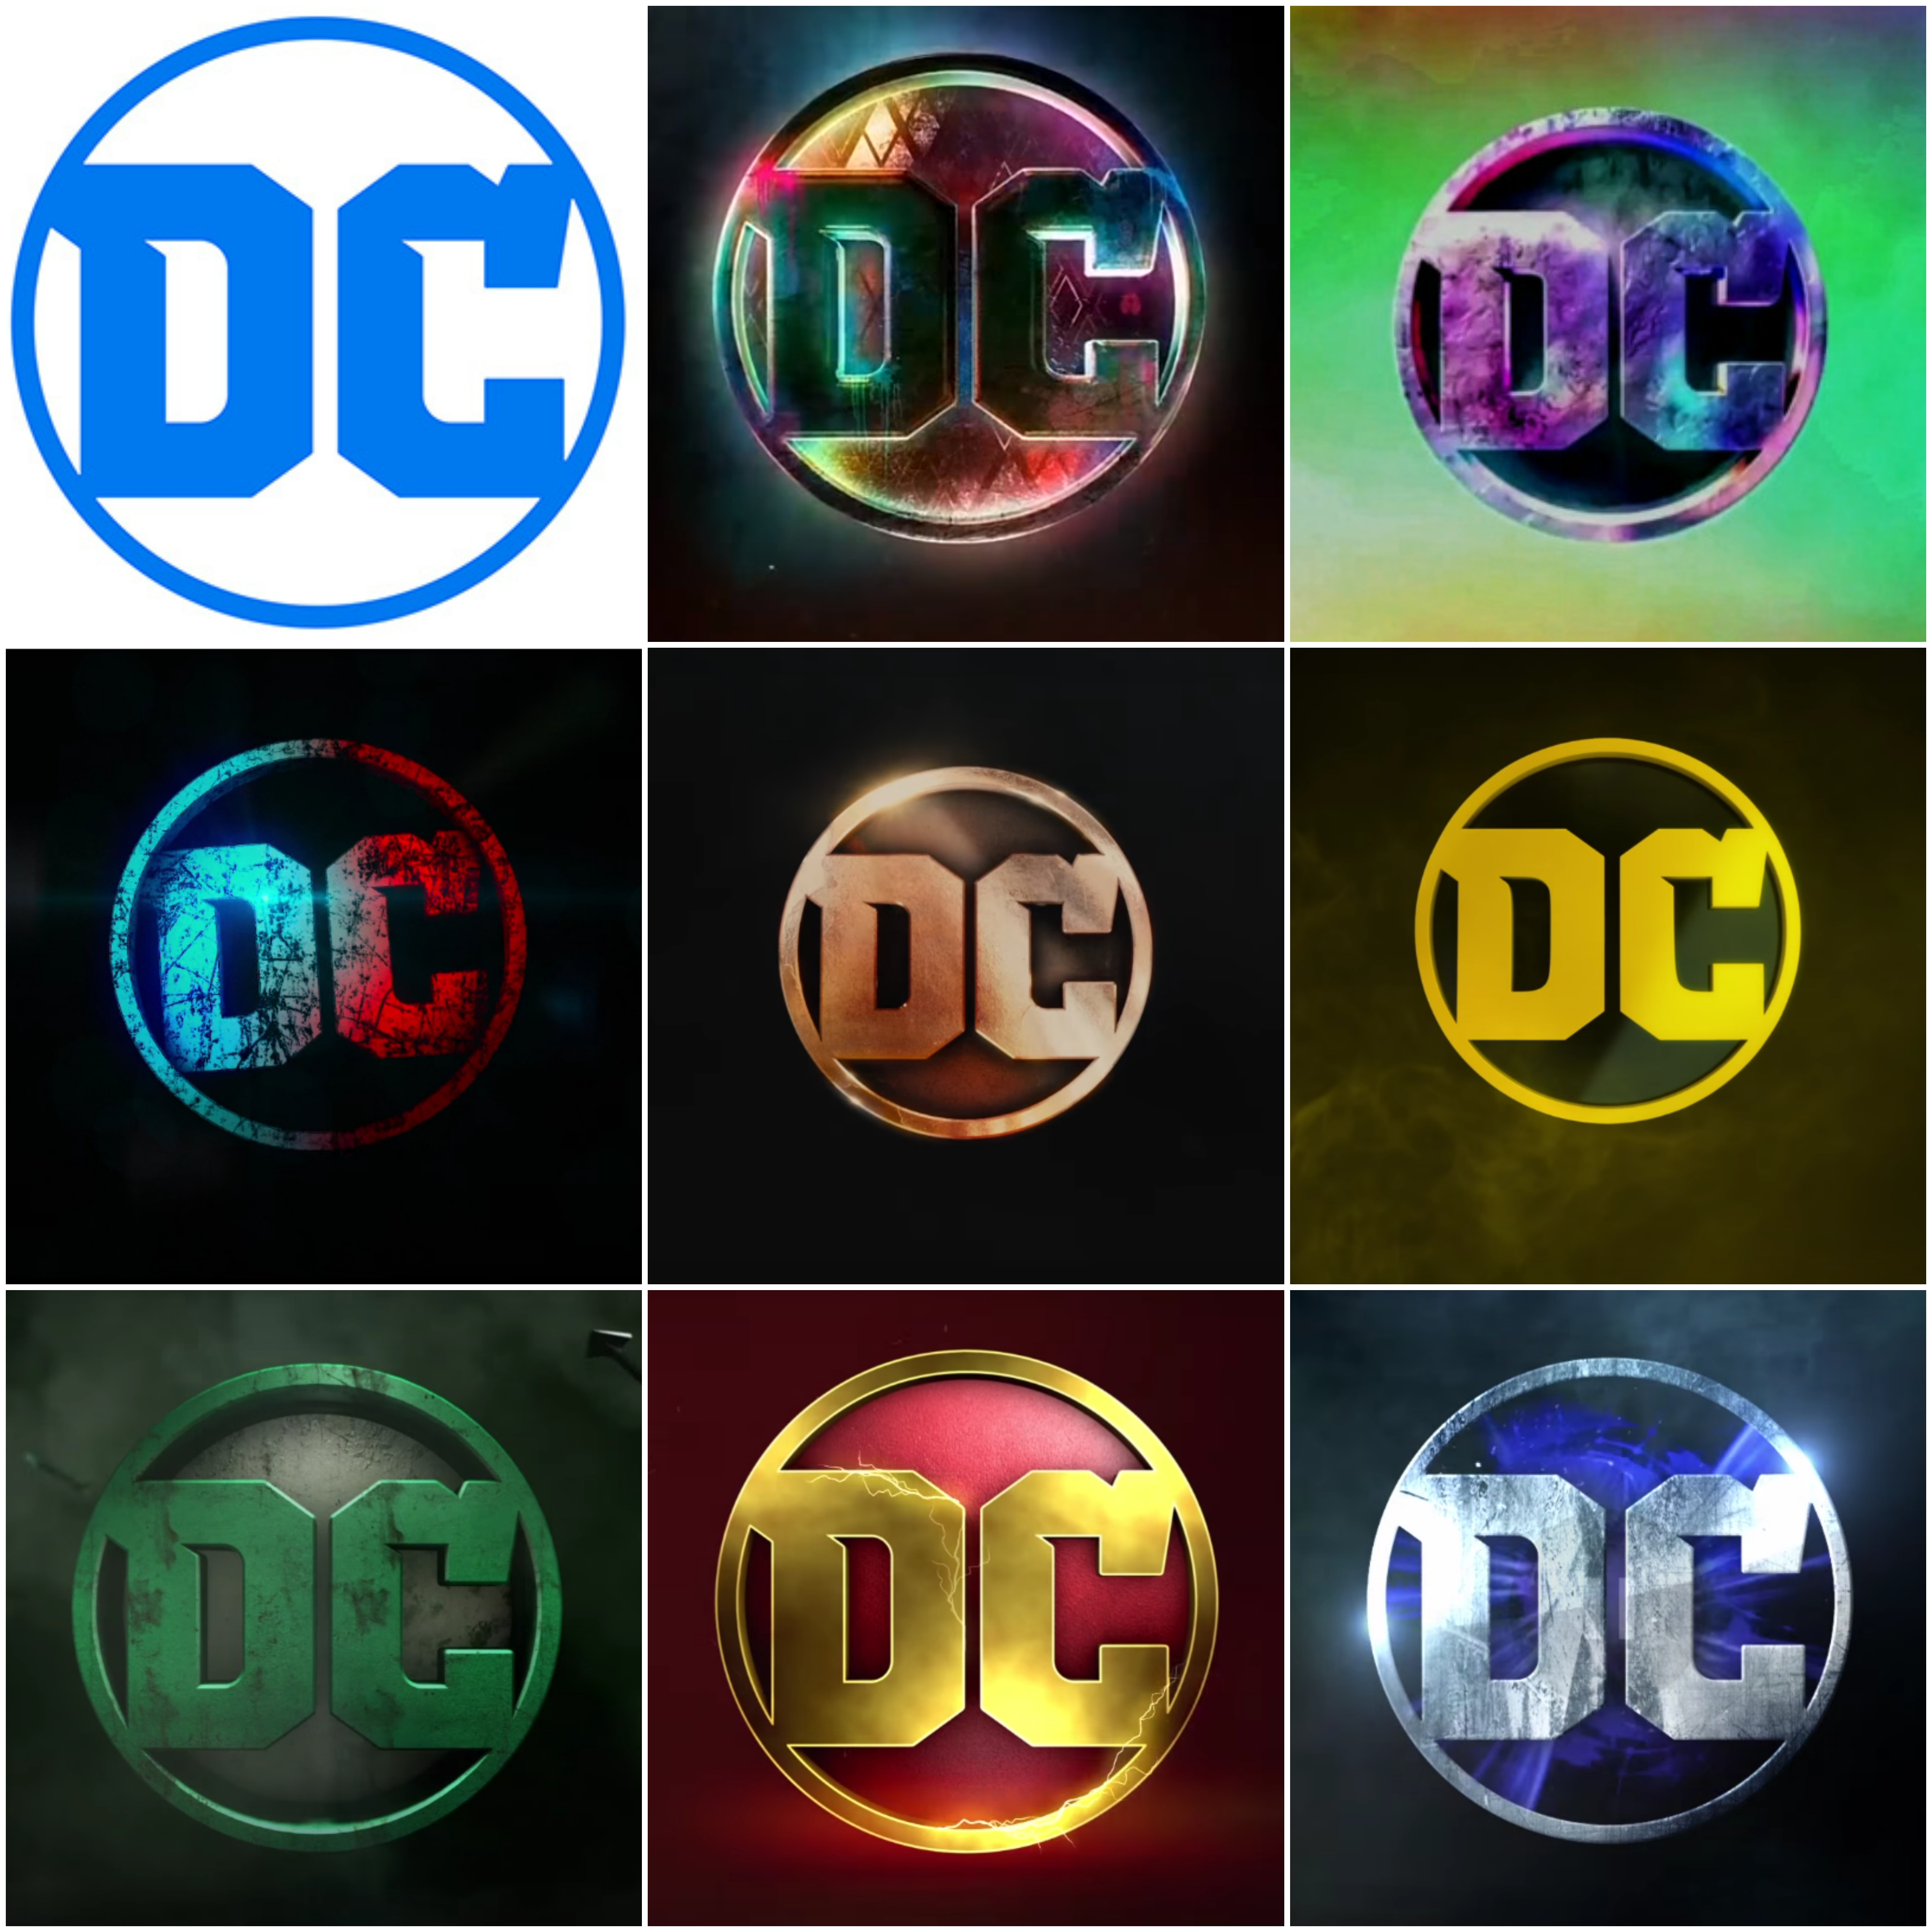 Gotta love the things they can do with the new DC logo.